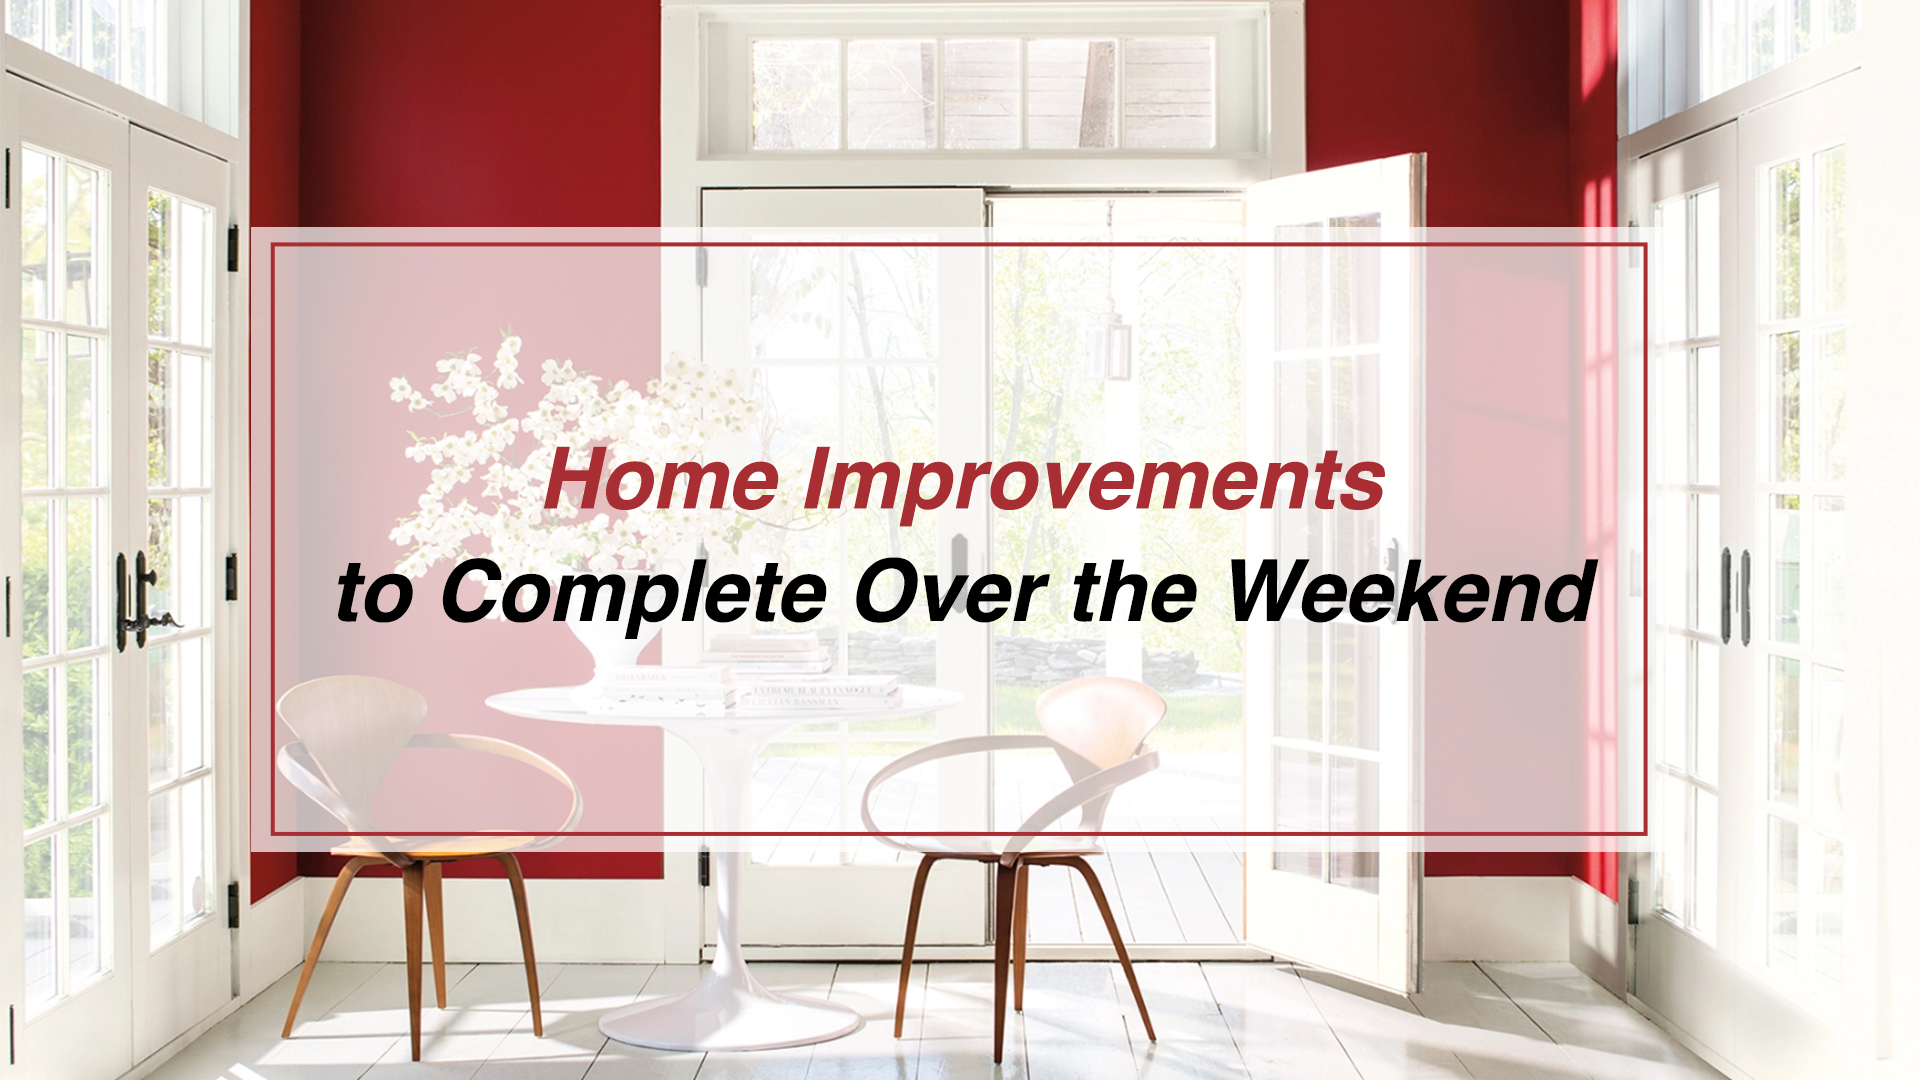 Easy Home Improvements to Complete Over the Weekend